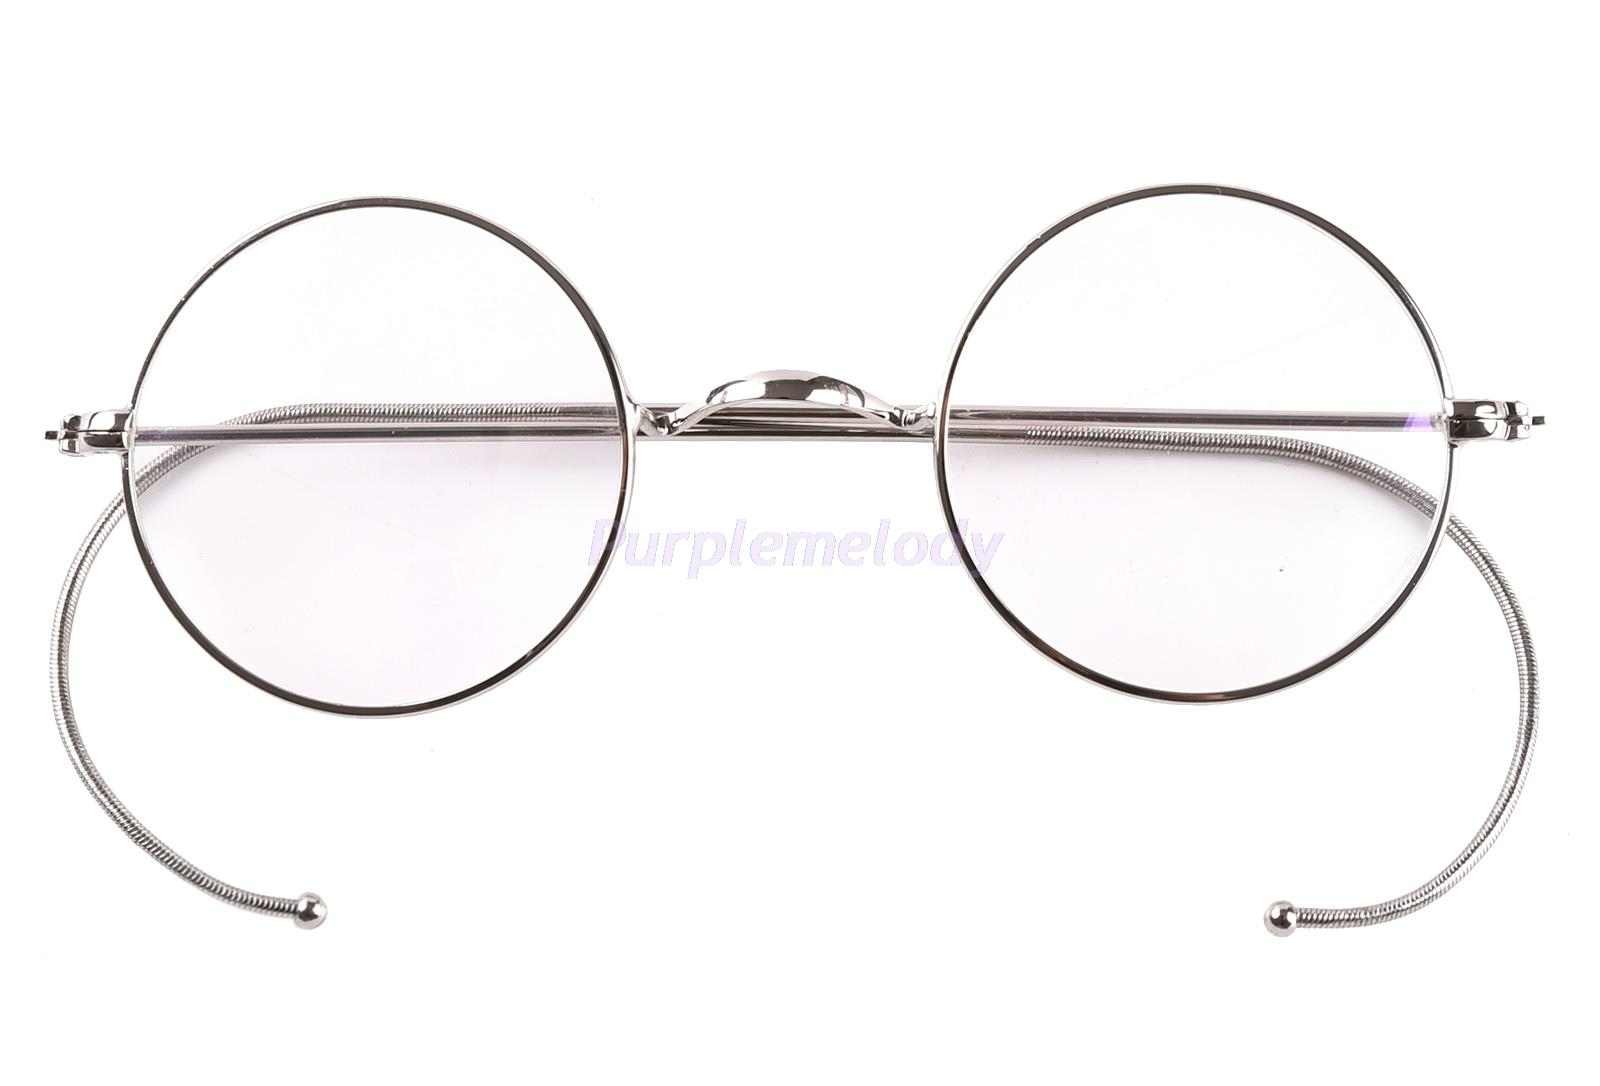 39mm Small Round Optical Rare Wire Rim Prescription Eyeglasses Frame Antique Kids Children's